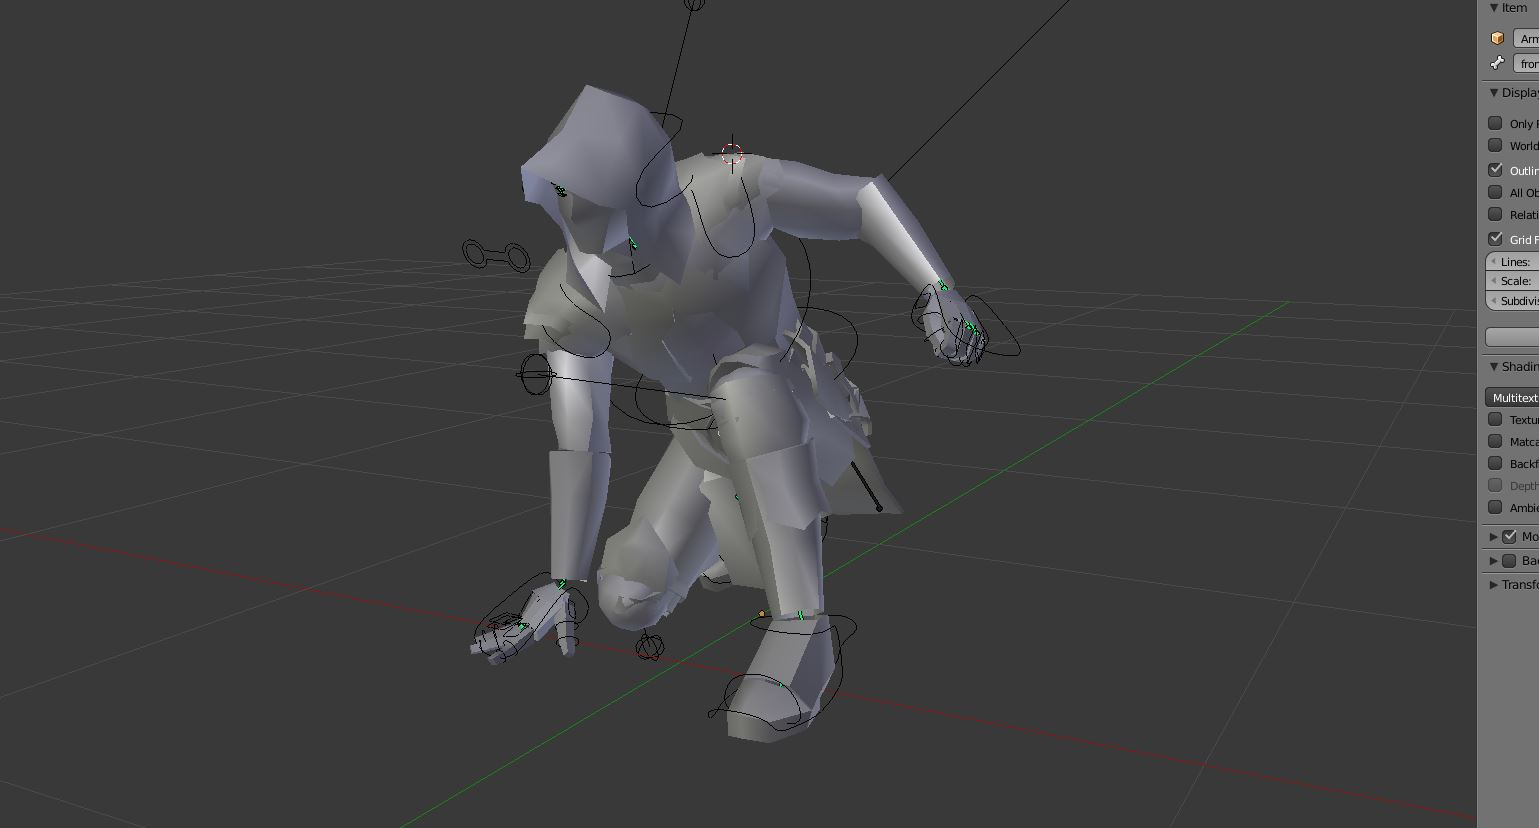 Blender Character Modeling And Rigging : Modifying a rig to new character blendernation